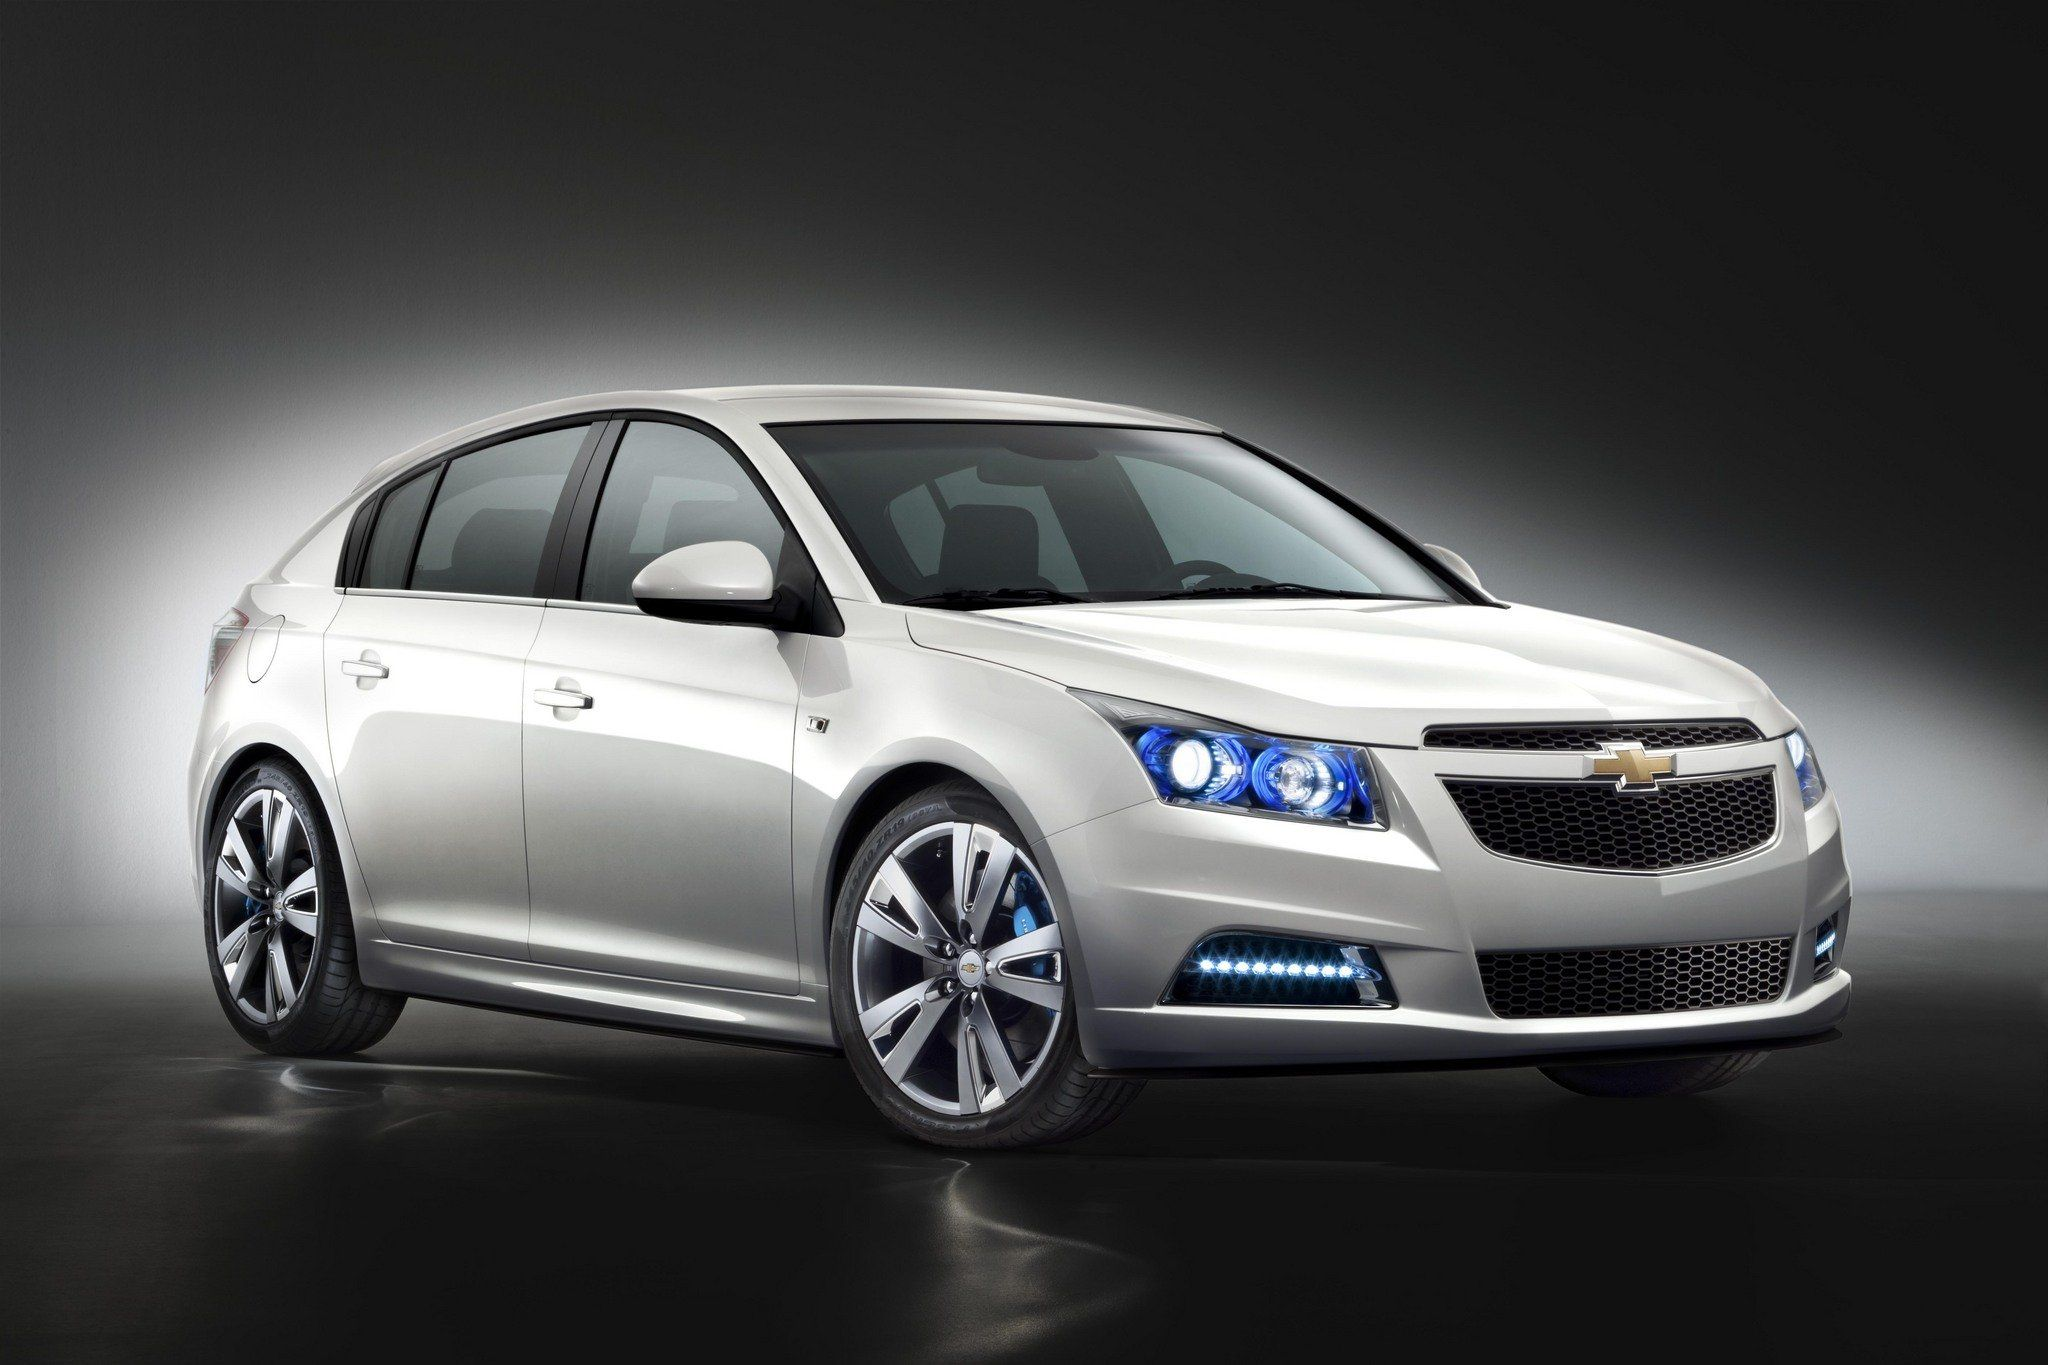 Gm Shows Off Cruze Hatchback In Europe Chevy Cruze Best Small